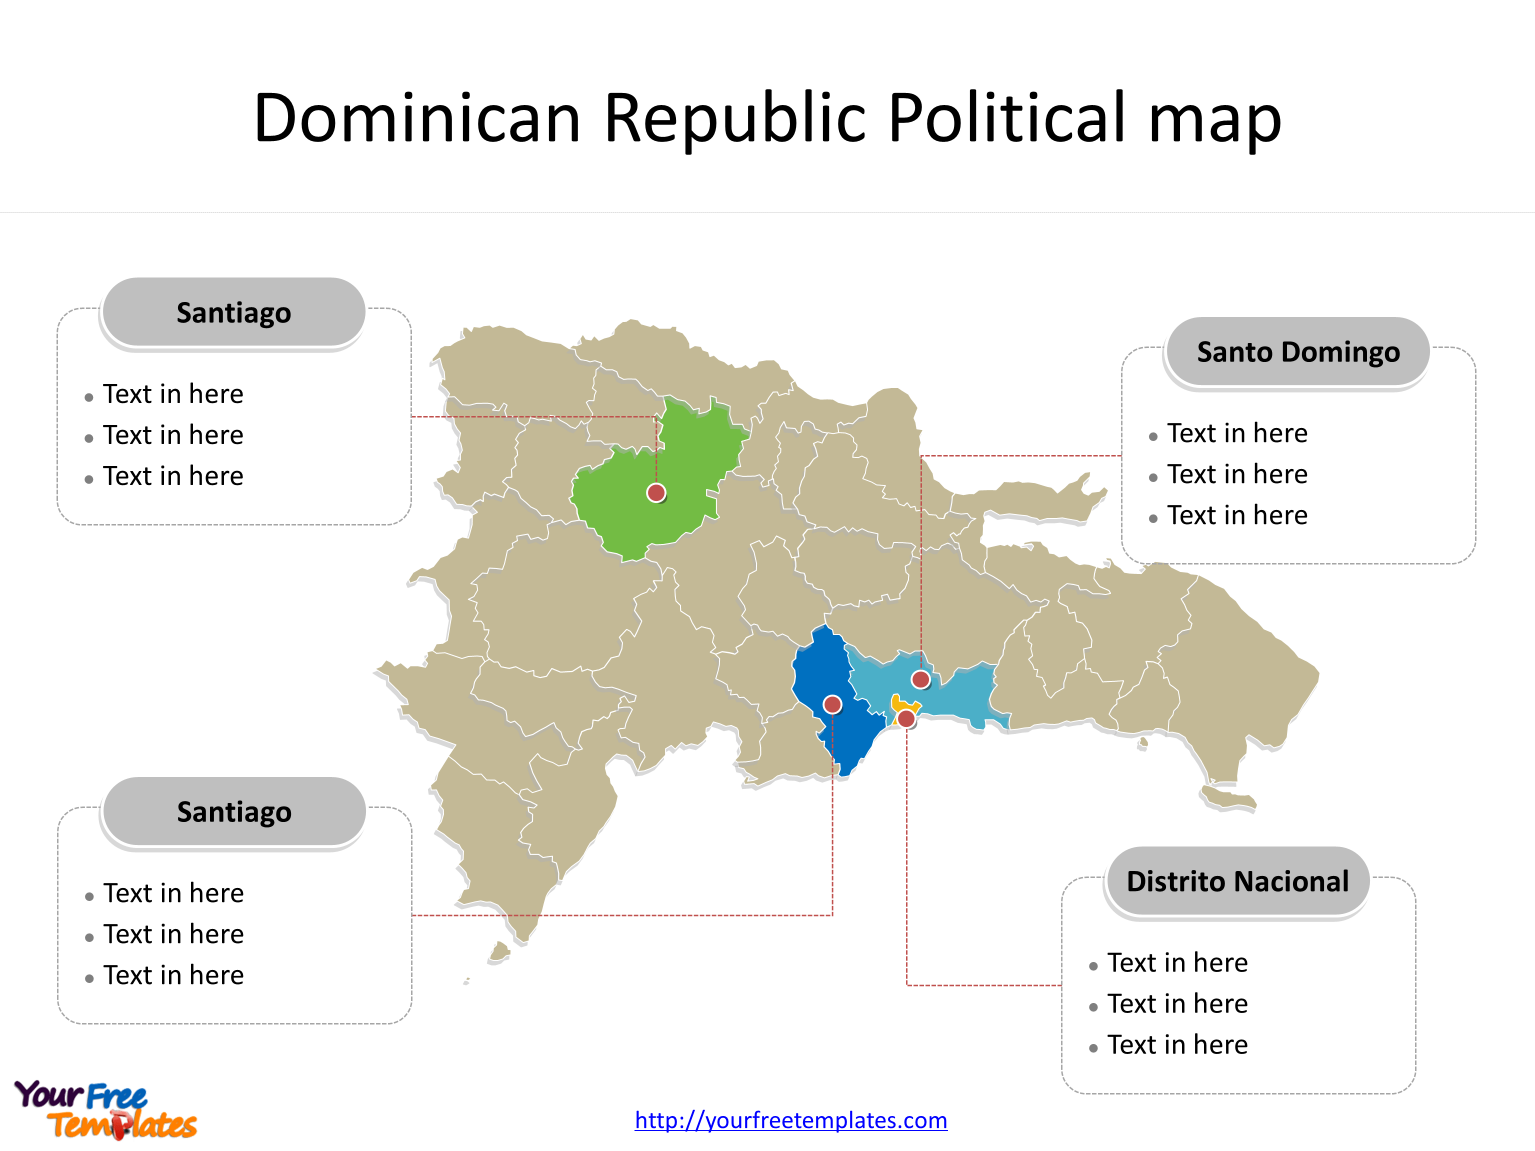 Map of Dominican Republic with political division and major Provinces labeled on the Dominican Republic map blank templates